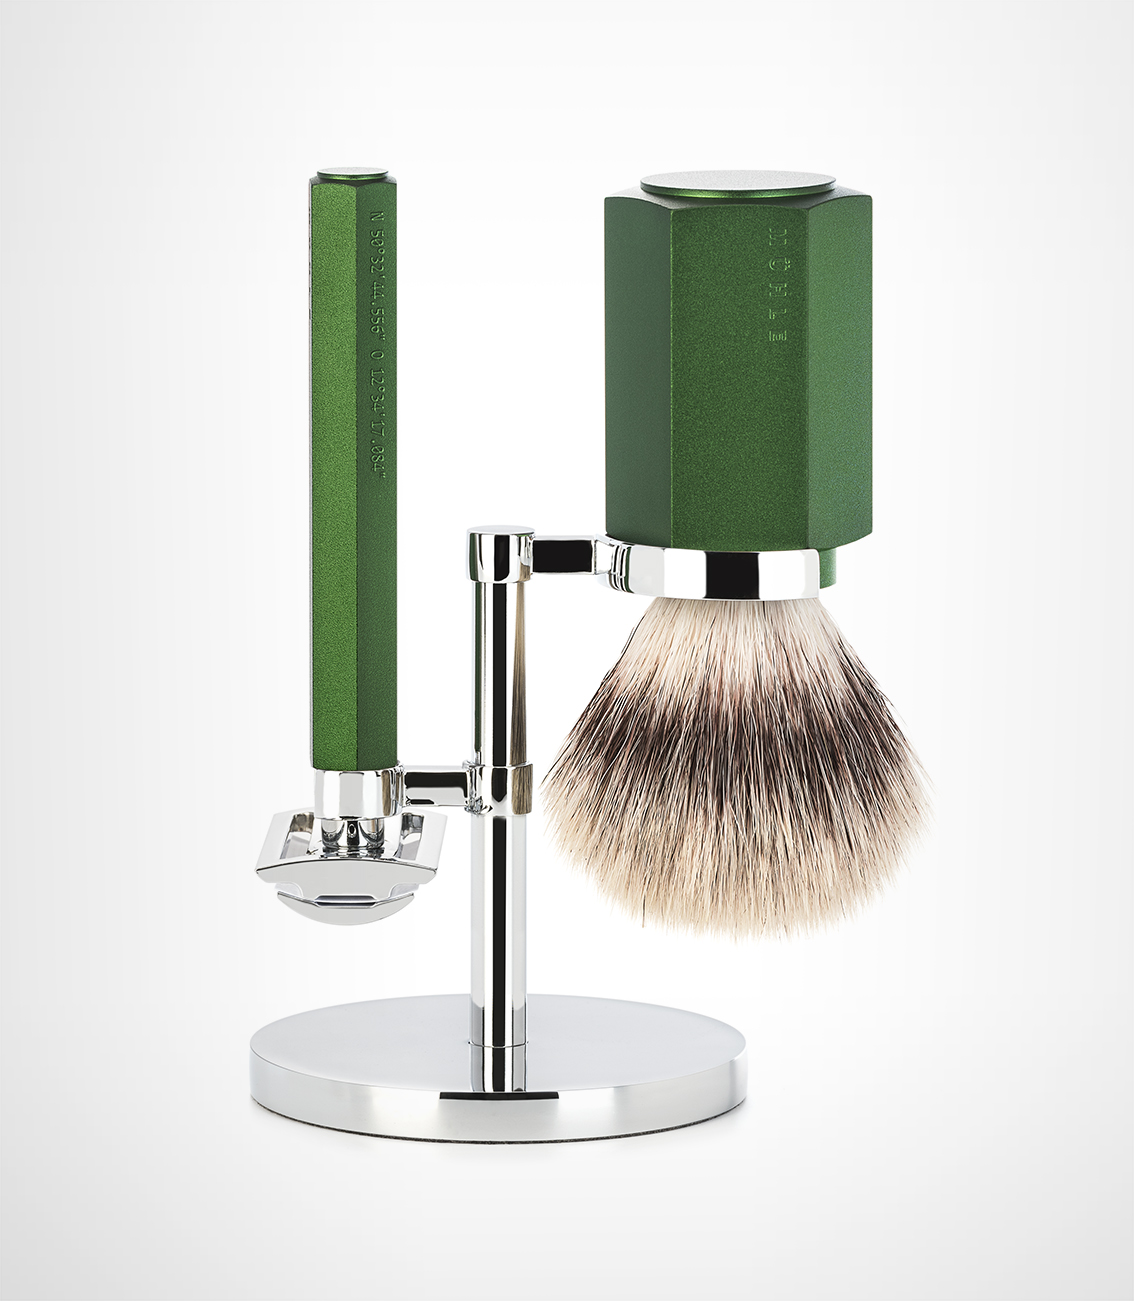 Curator: this will elevate your dull routine shaving to an enjoyable design experience. - Winner of the Red Dot Award, this shaving set, designed by Berlin designer Mark Braun, is one of the finest shaving implement.